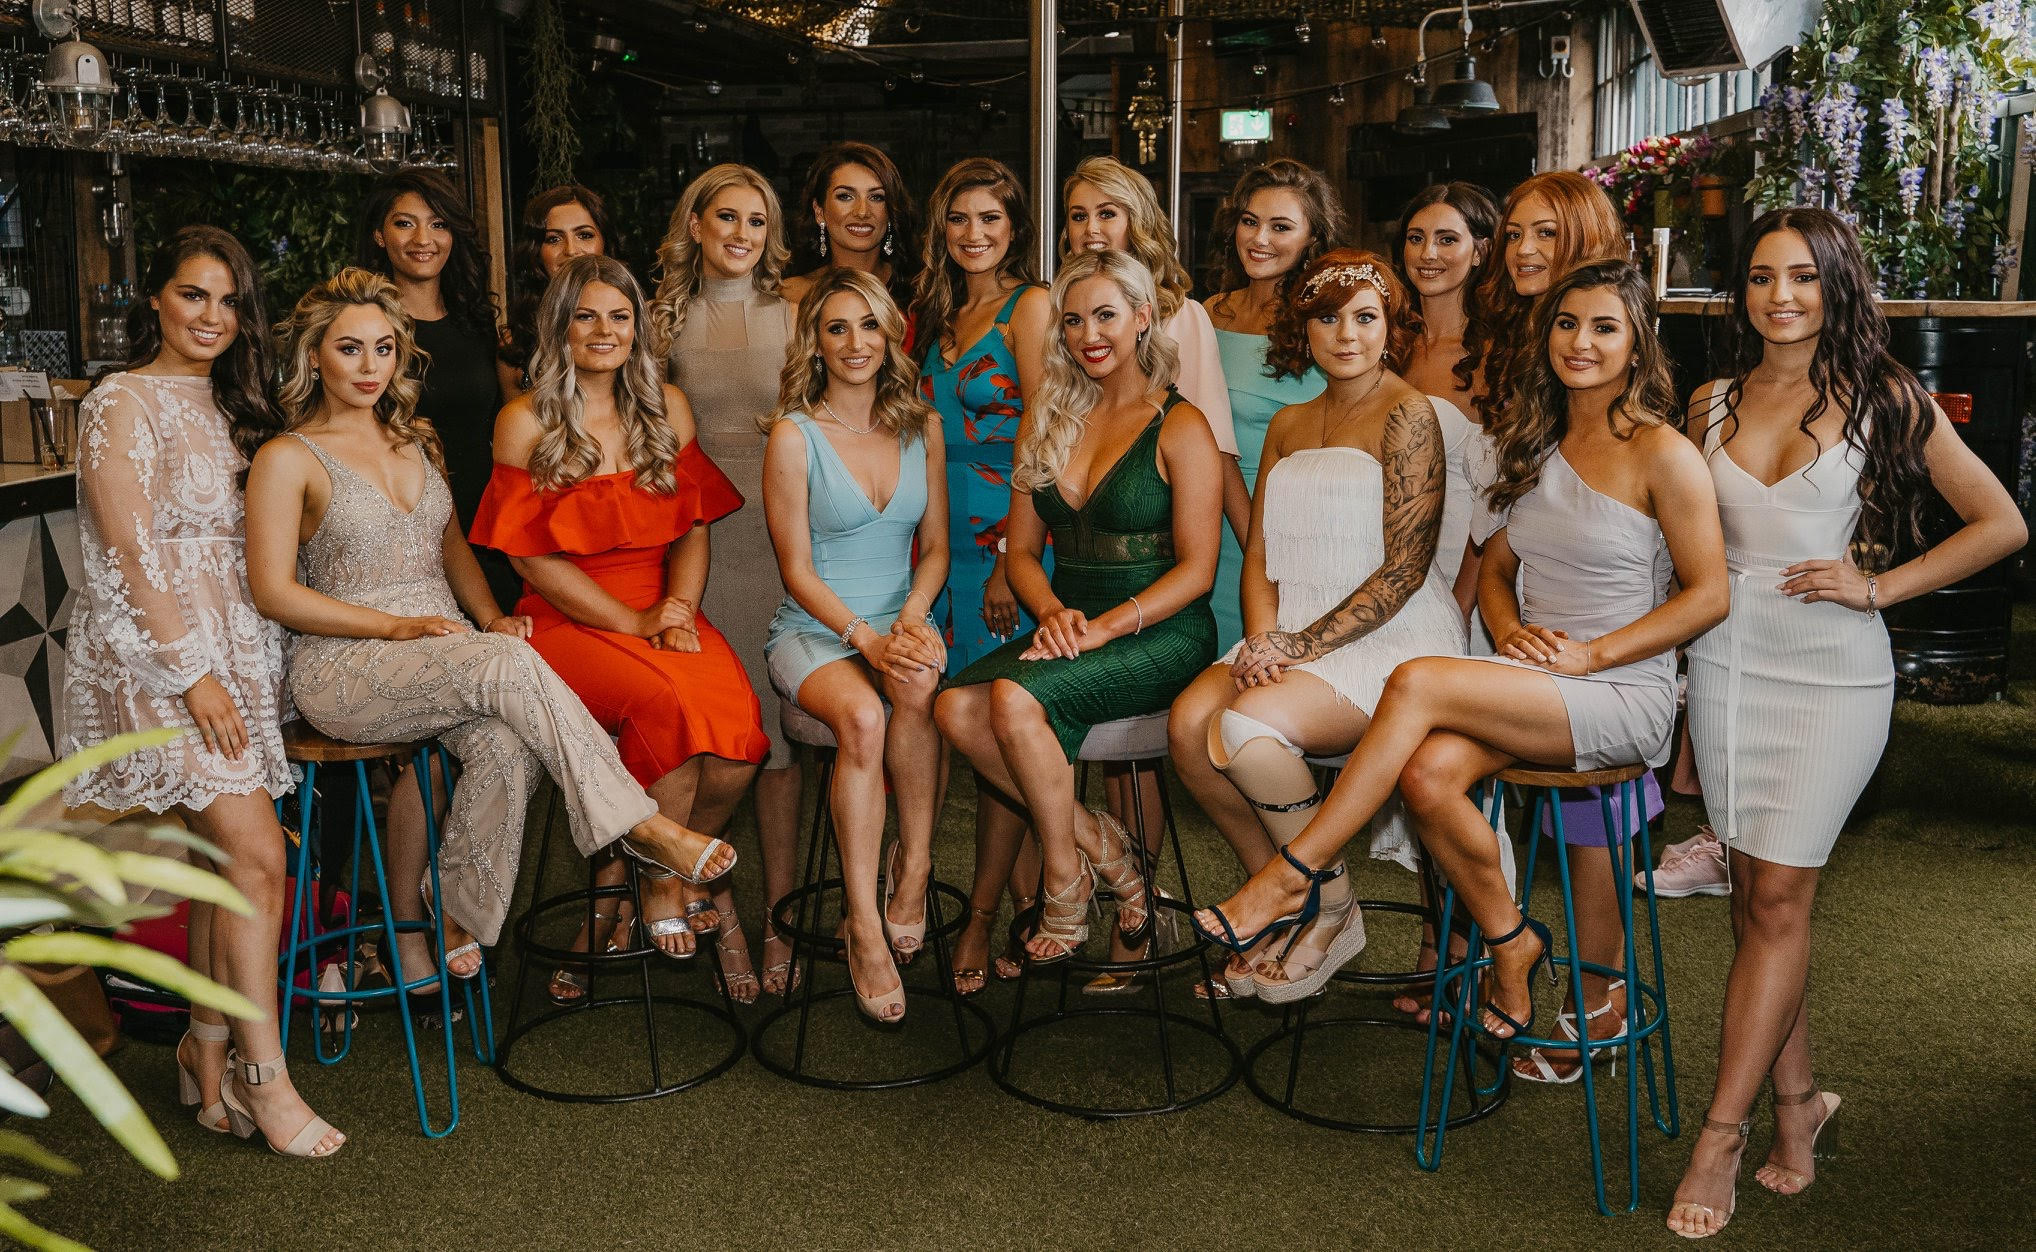 The amazing contestants of Miss Limerick & Miss Clare 2019